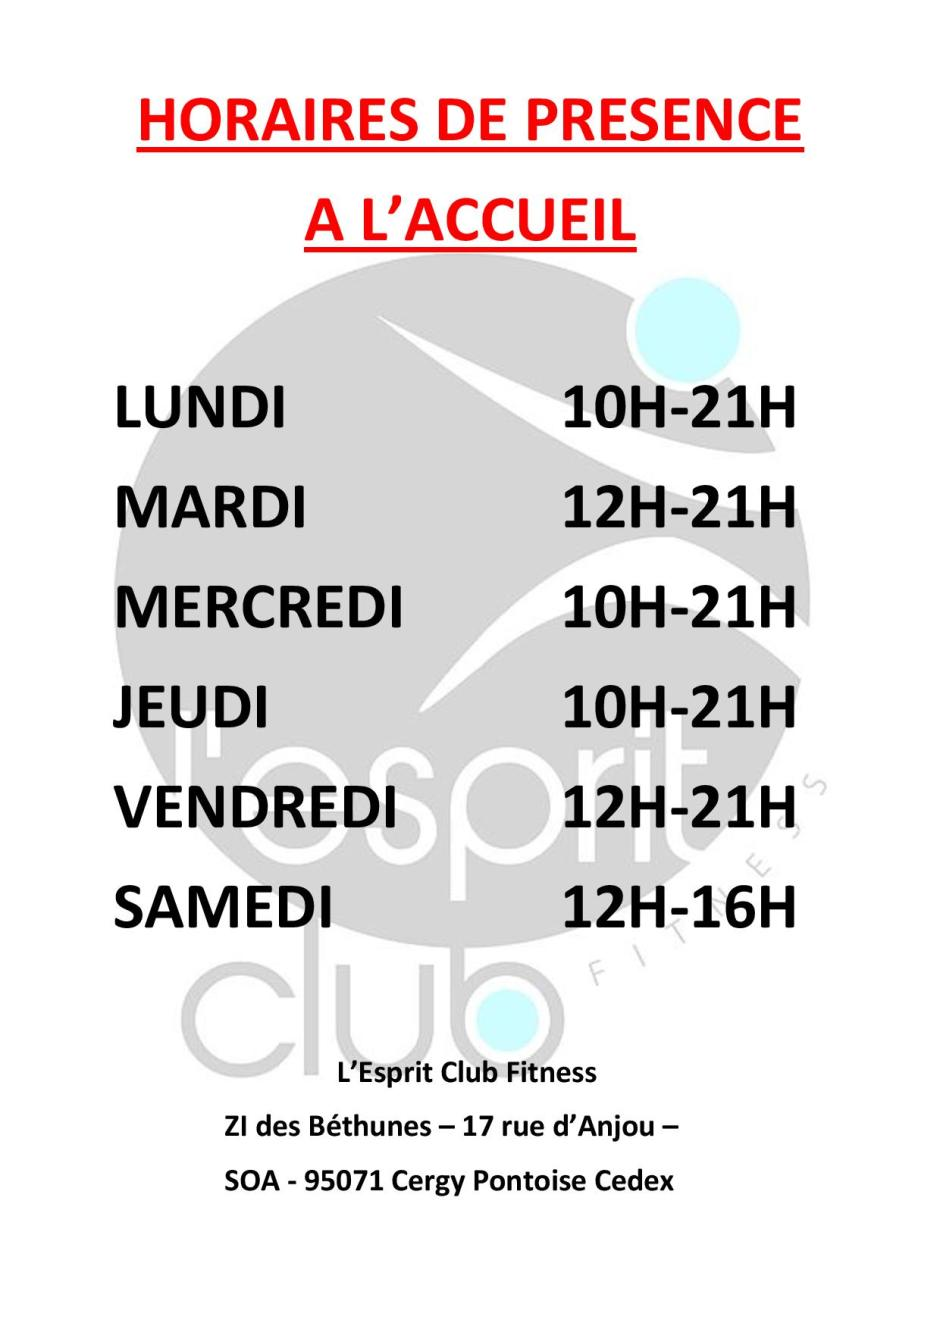 horaires-presence-accueil-page-001